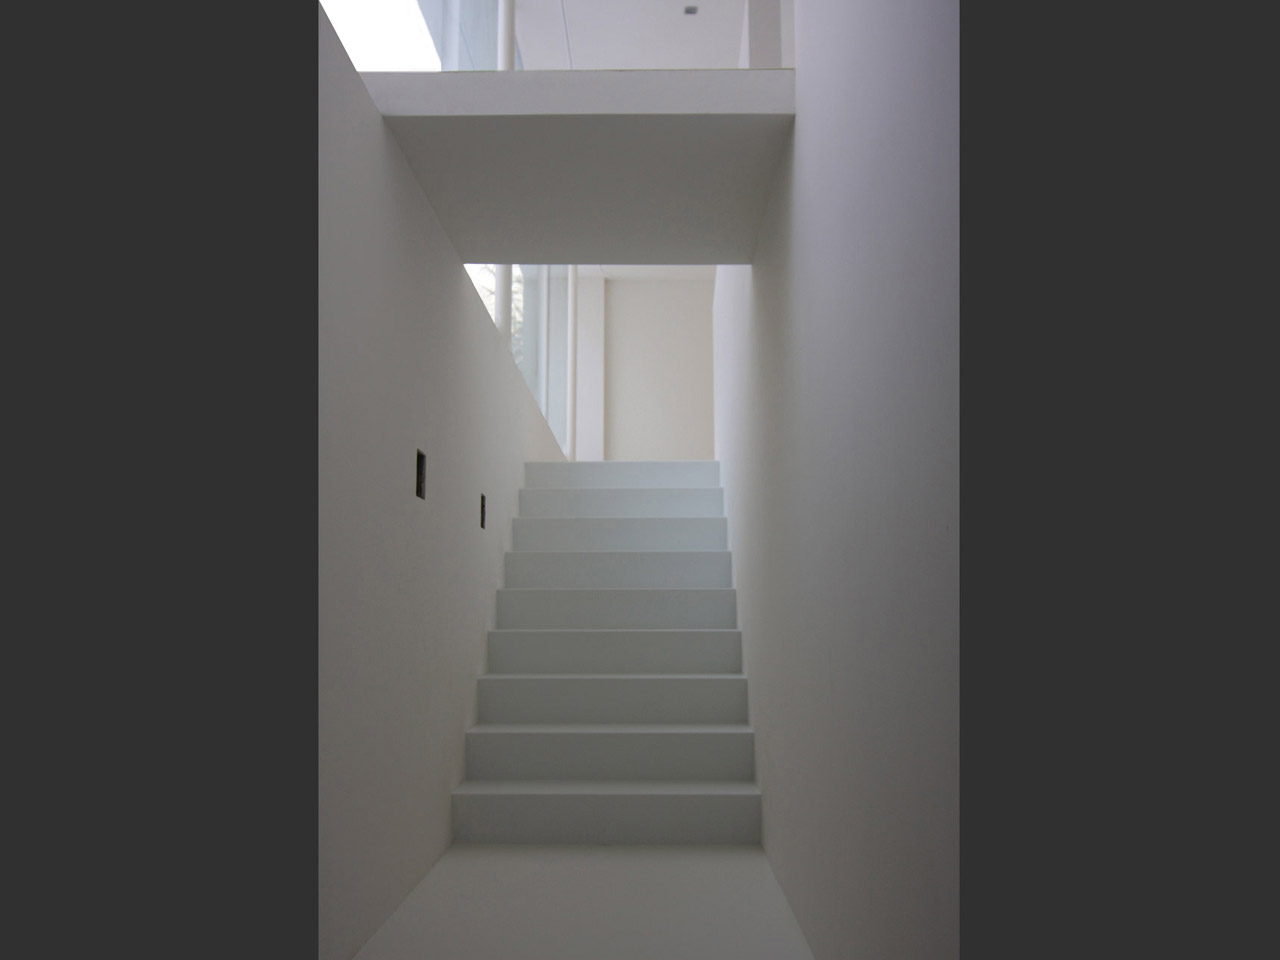 The stairway leading from the underground garage into the living area